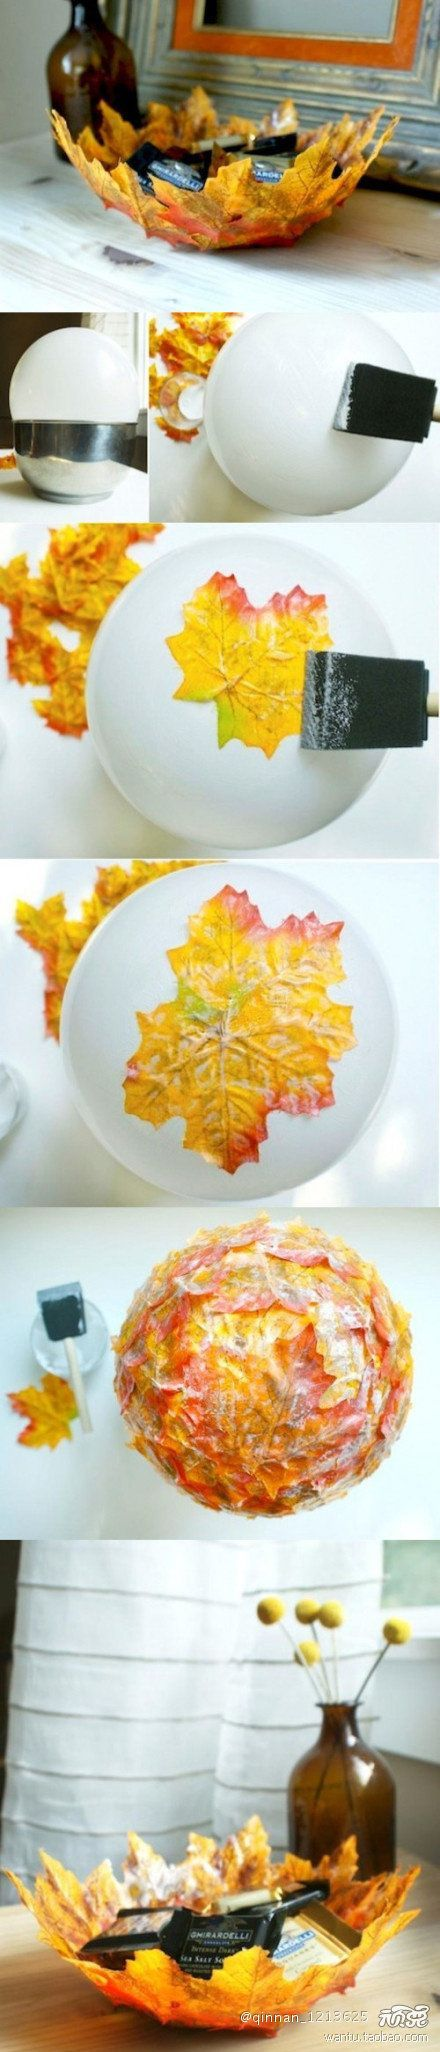 DIY Leaf Bowl DIY Projects